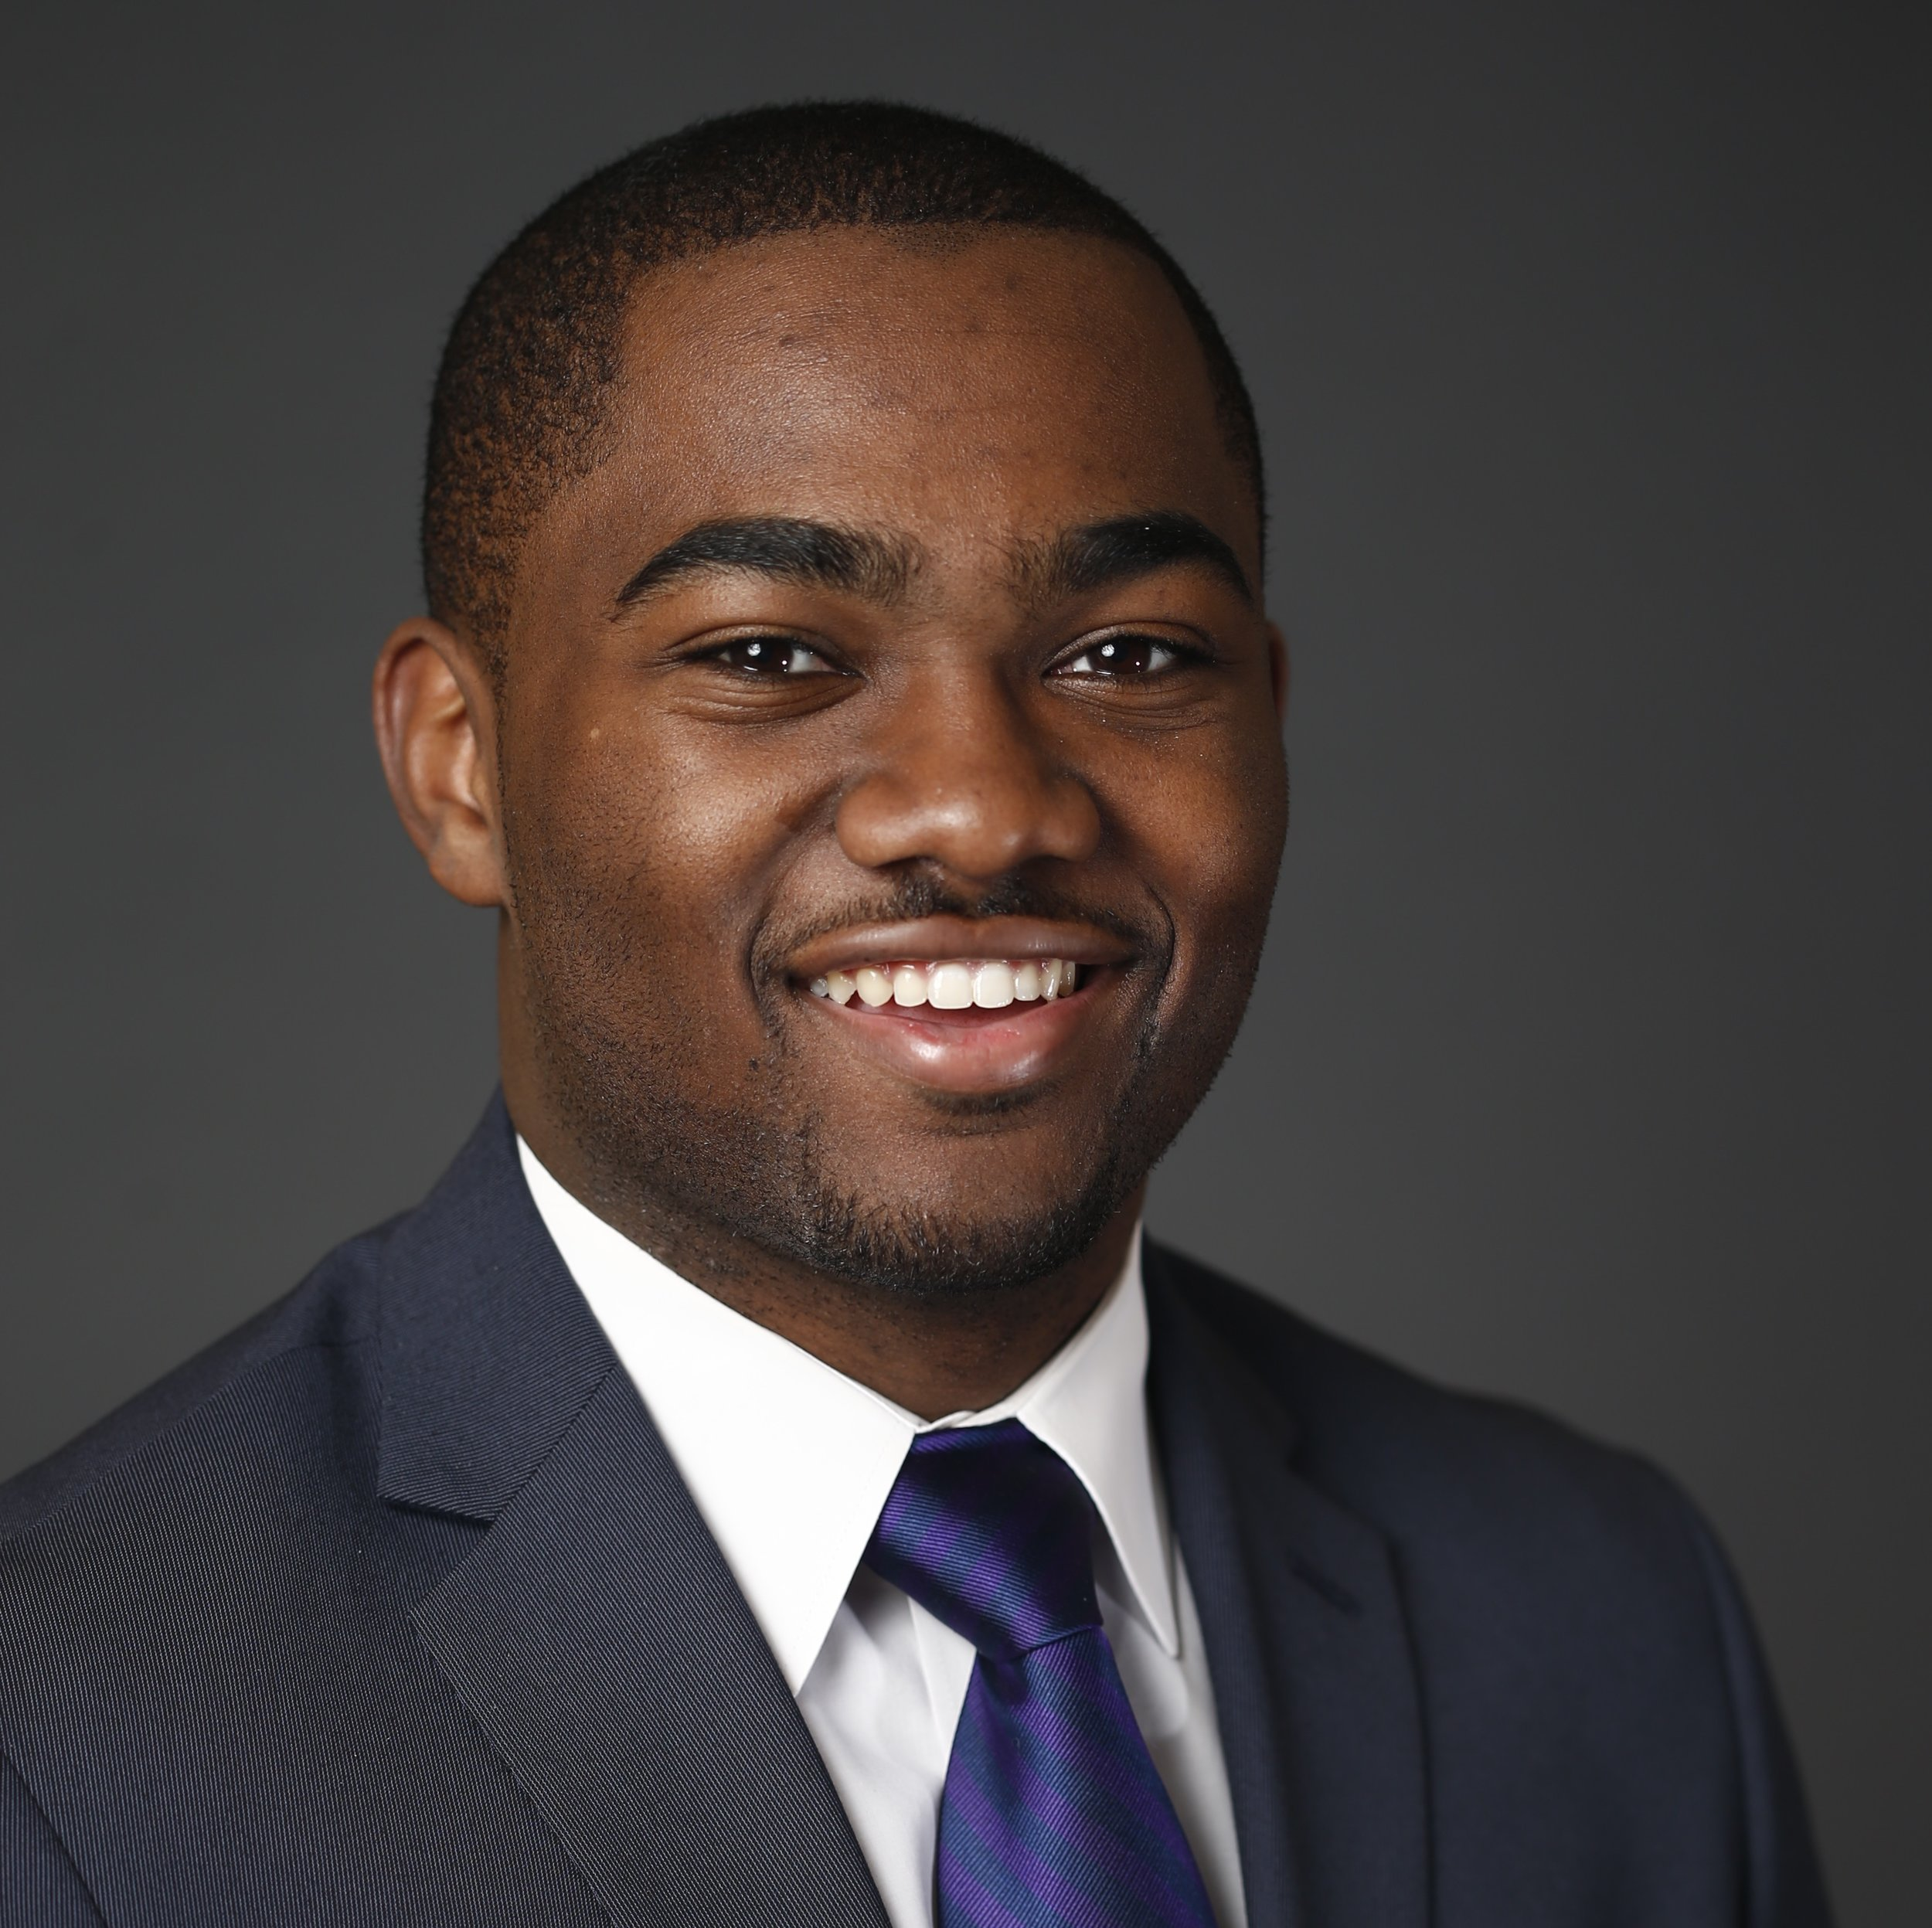 Riley Jones, IV   Riley Jones is a social entrepreneur with a passion for creating access to opportunity. This is rooted in his experience growing up on Chicago's South Side.In 2015, he co-founded Bloc, a company that uses artificial intelligence to coach students of color through their careers. He is a second-year law student at the New York University School of Law where he is the inaugural Grunin Scholar for Social Entrepreneurship and Law. His research there focuses on the intersection of law, business, and society. Riley graduated from Columbia University with a B.A. in Political Science and American Studies in 2017. In his spare time, Riley is a professional singer and regular theatergoer.